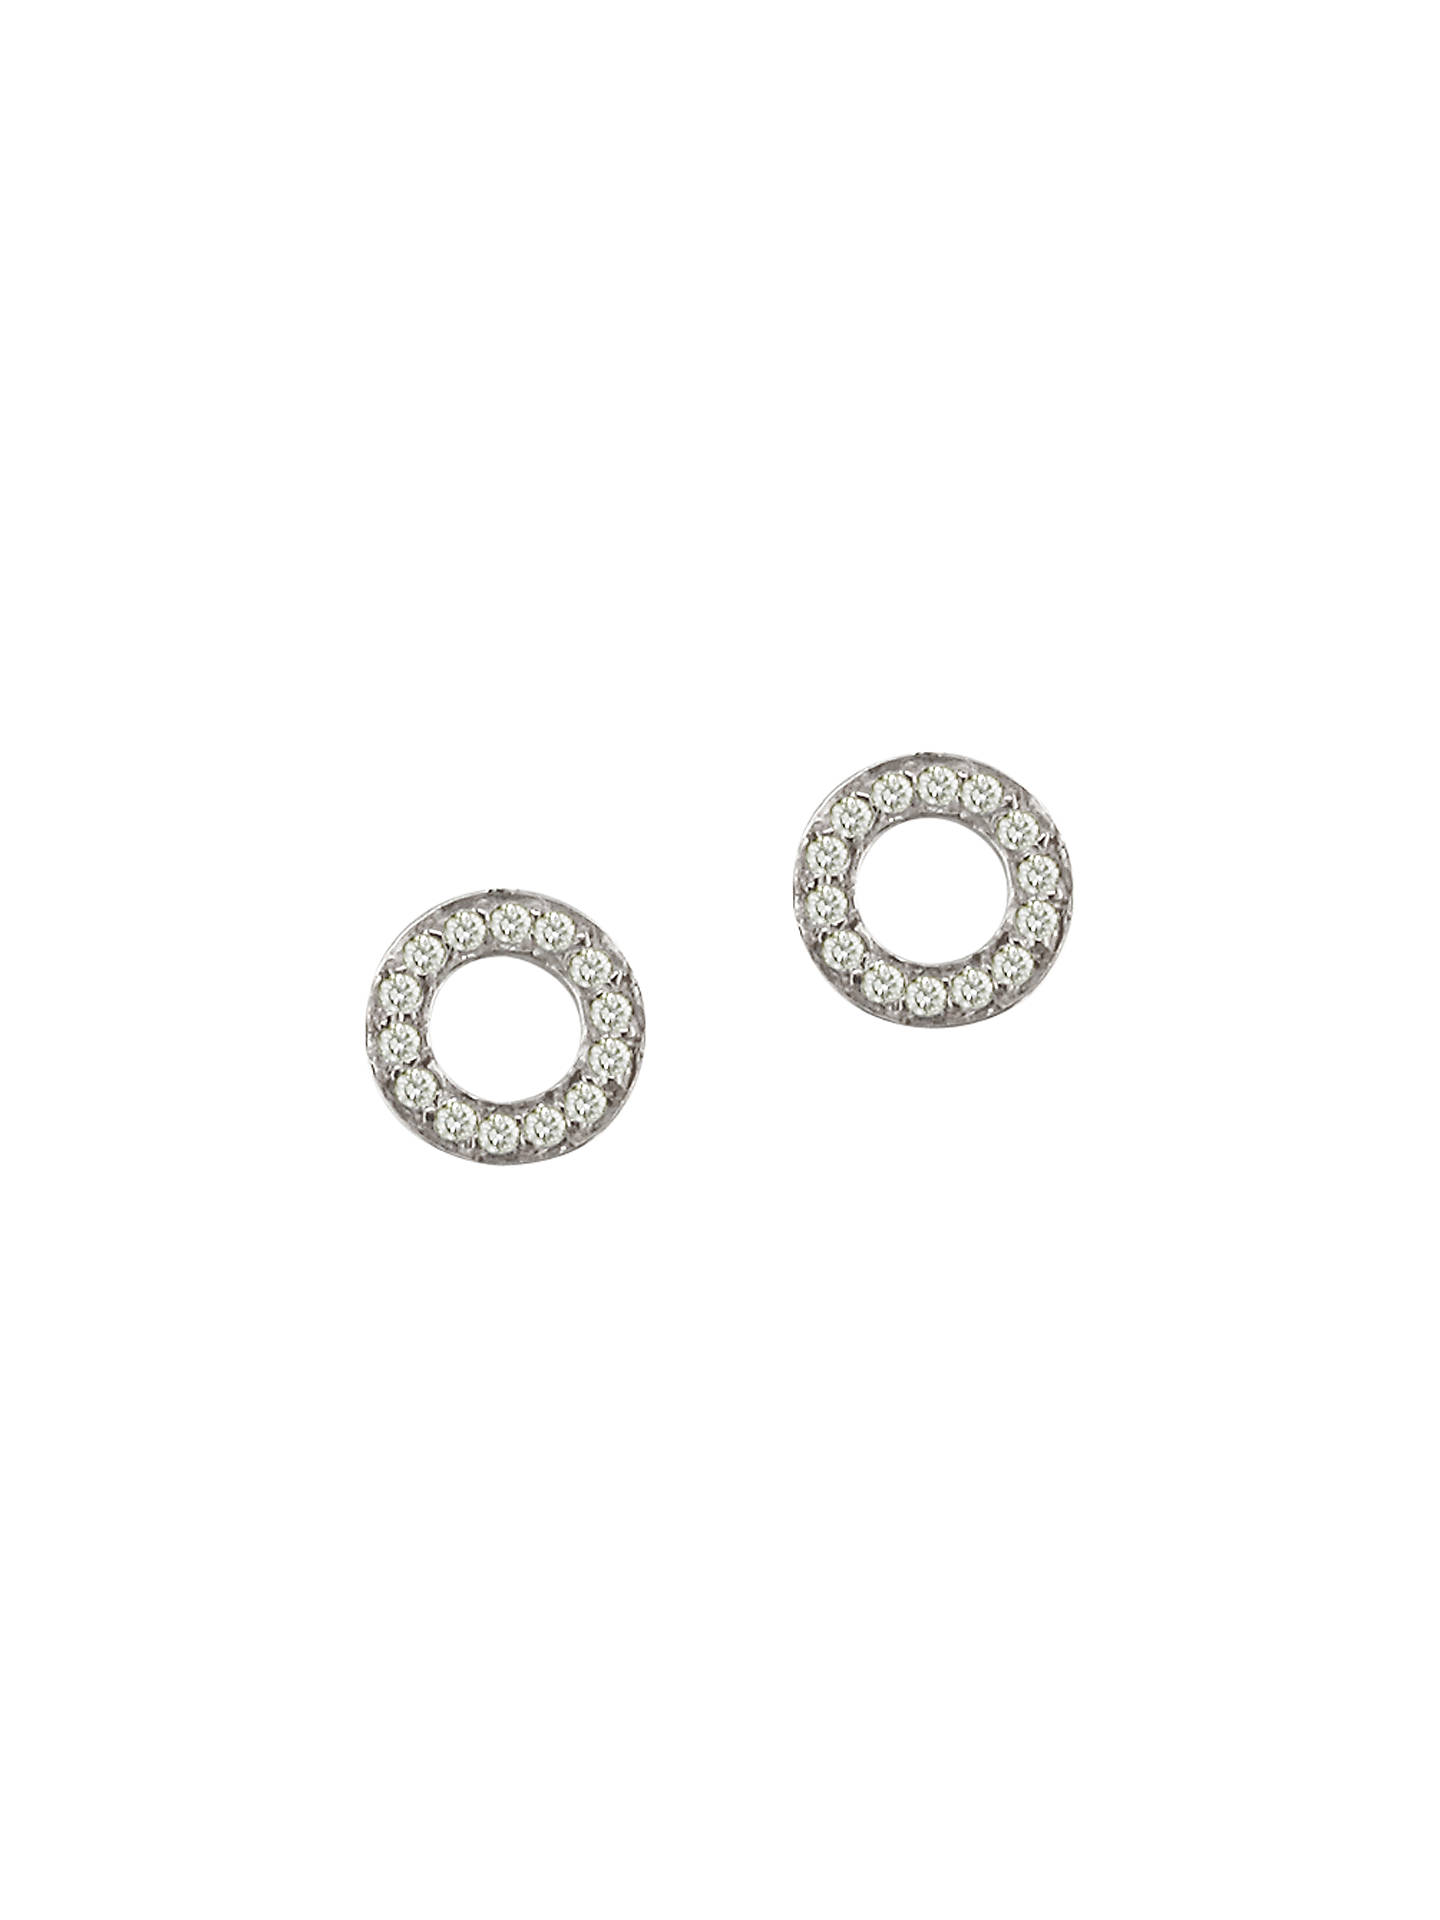 London Road Meridian 9ct Gold Diamond Circle Stud Earrings White Online At Johnlewis